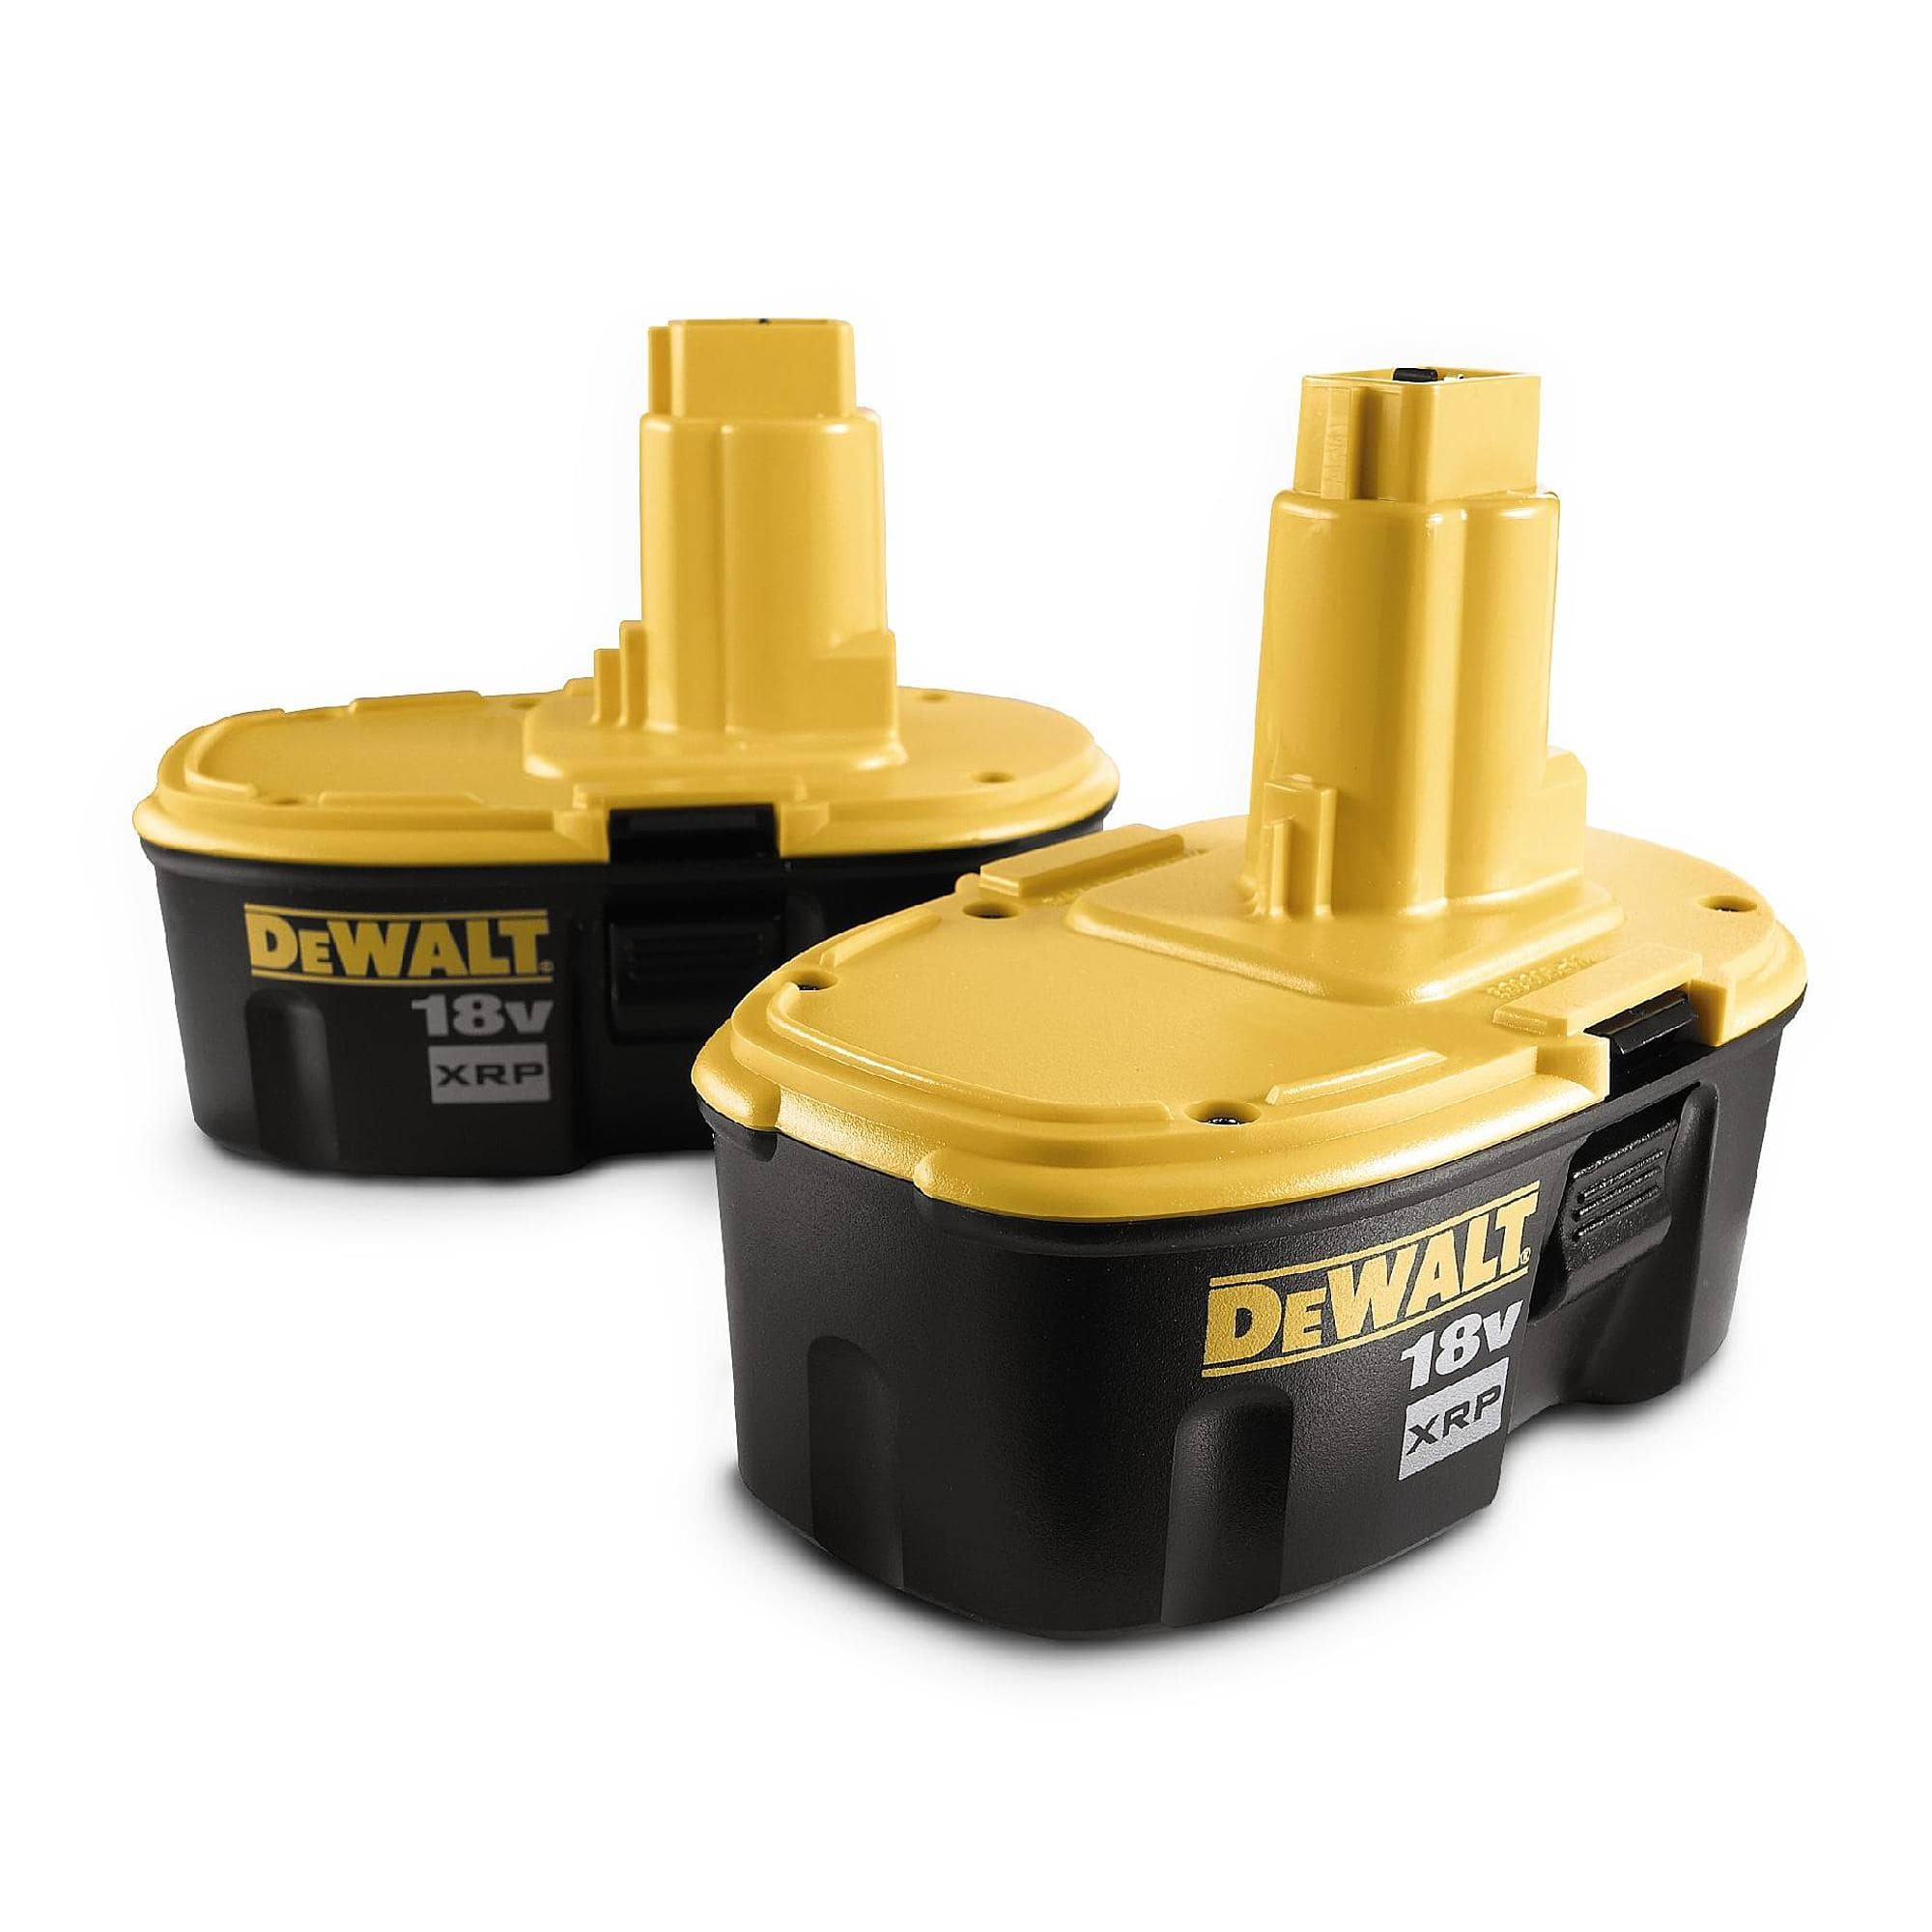 Dewalt battery 2-pack at Sears $99 + $60 back in points